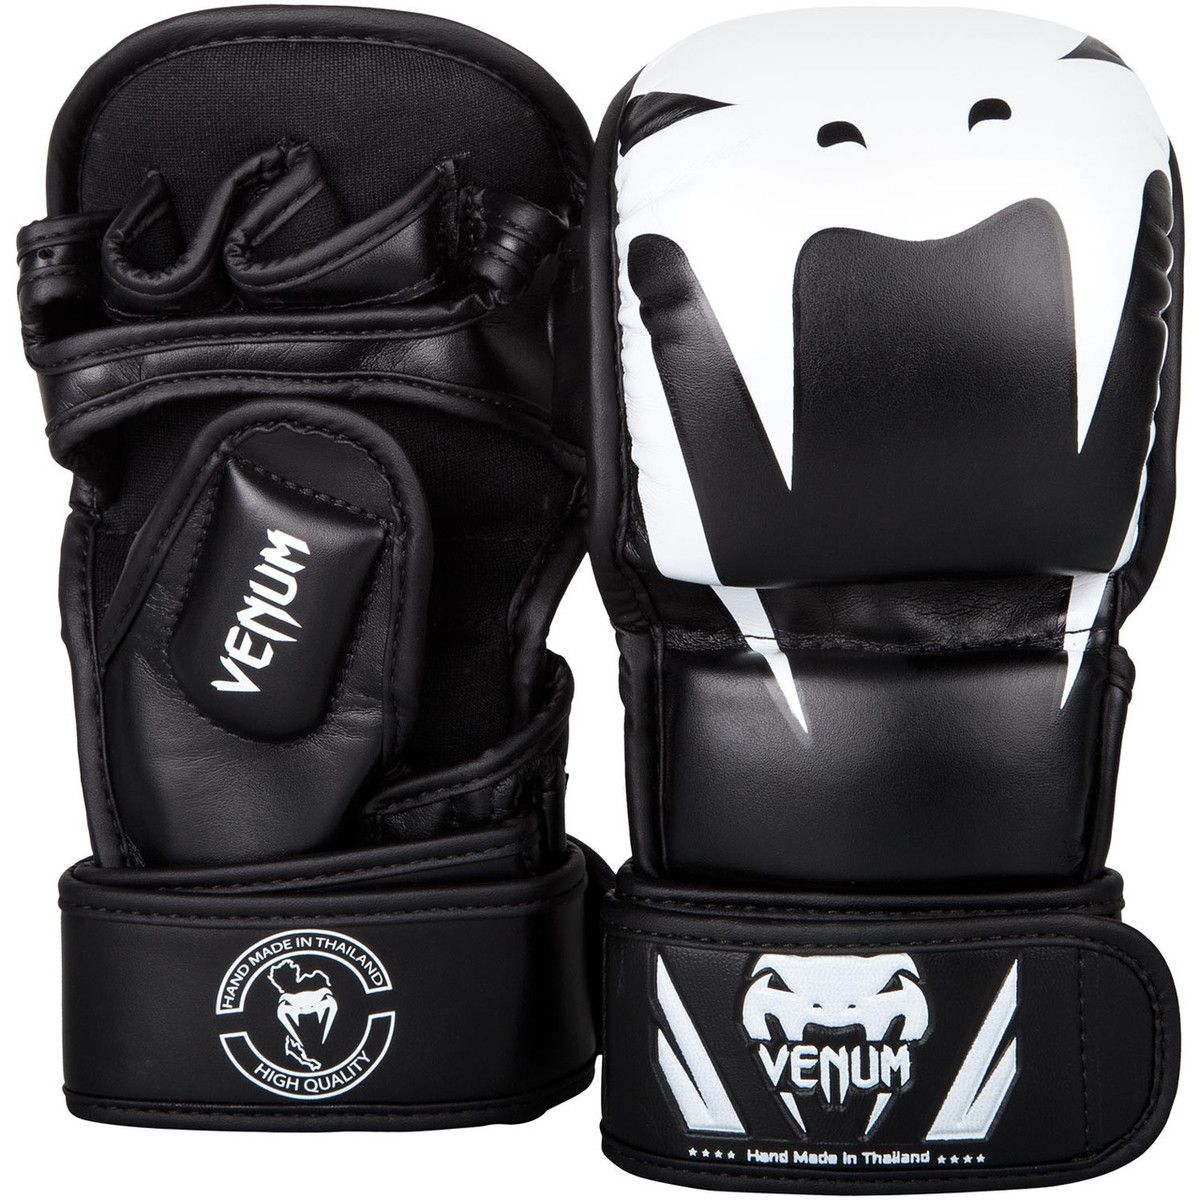 Phenom Leather Boxing Gloves MMA Training Fighting Punch Bag Sparring kickboxing